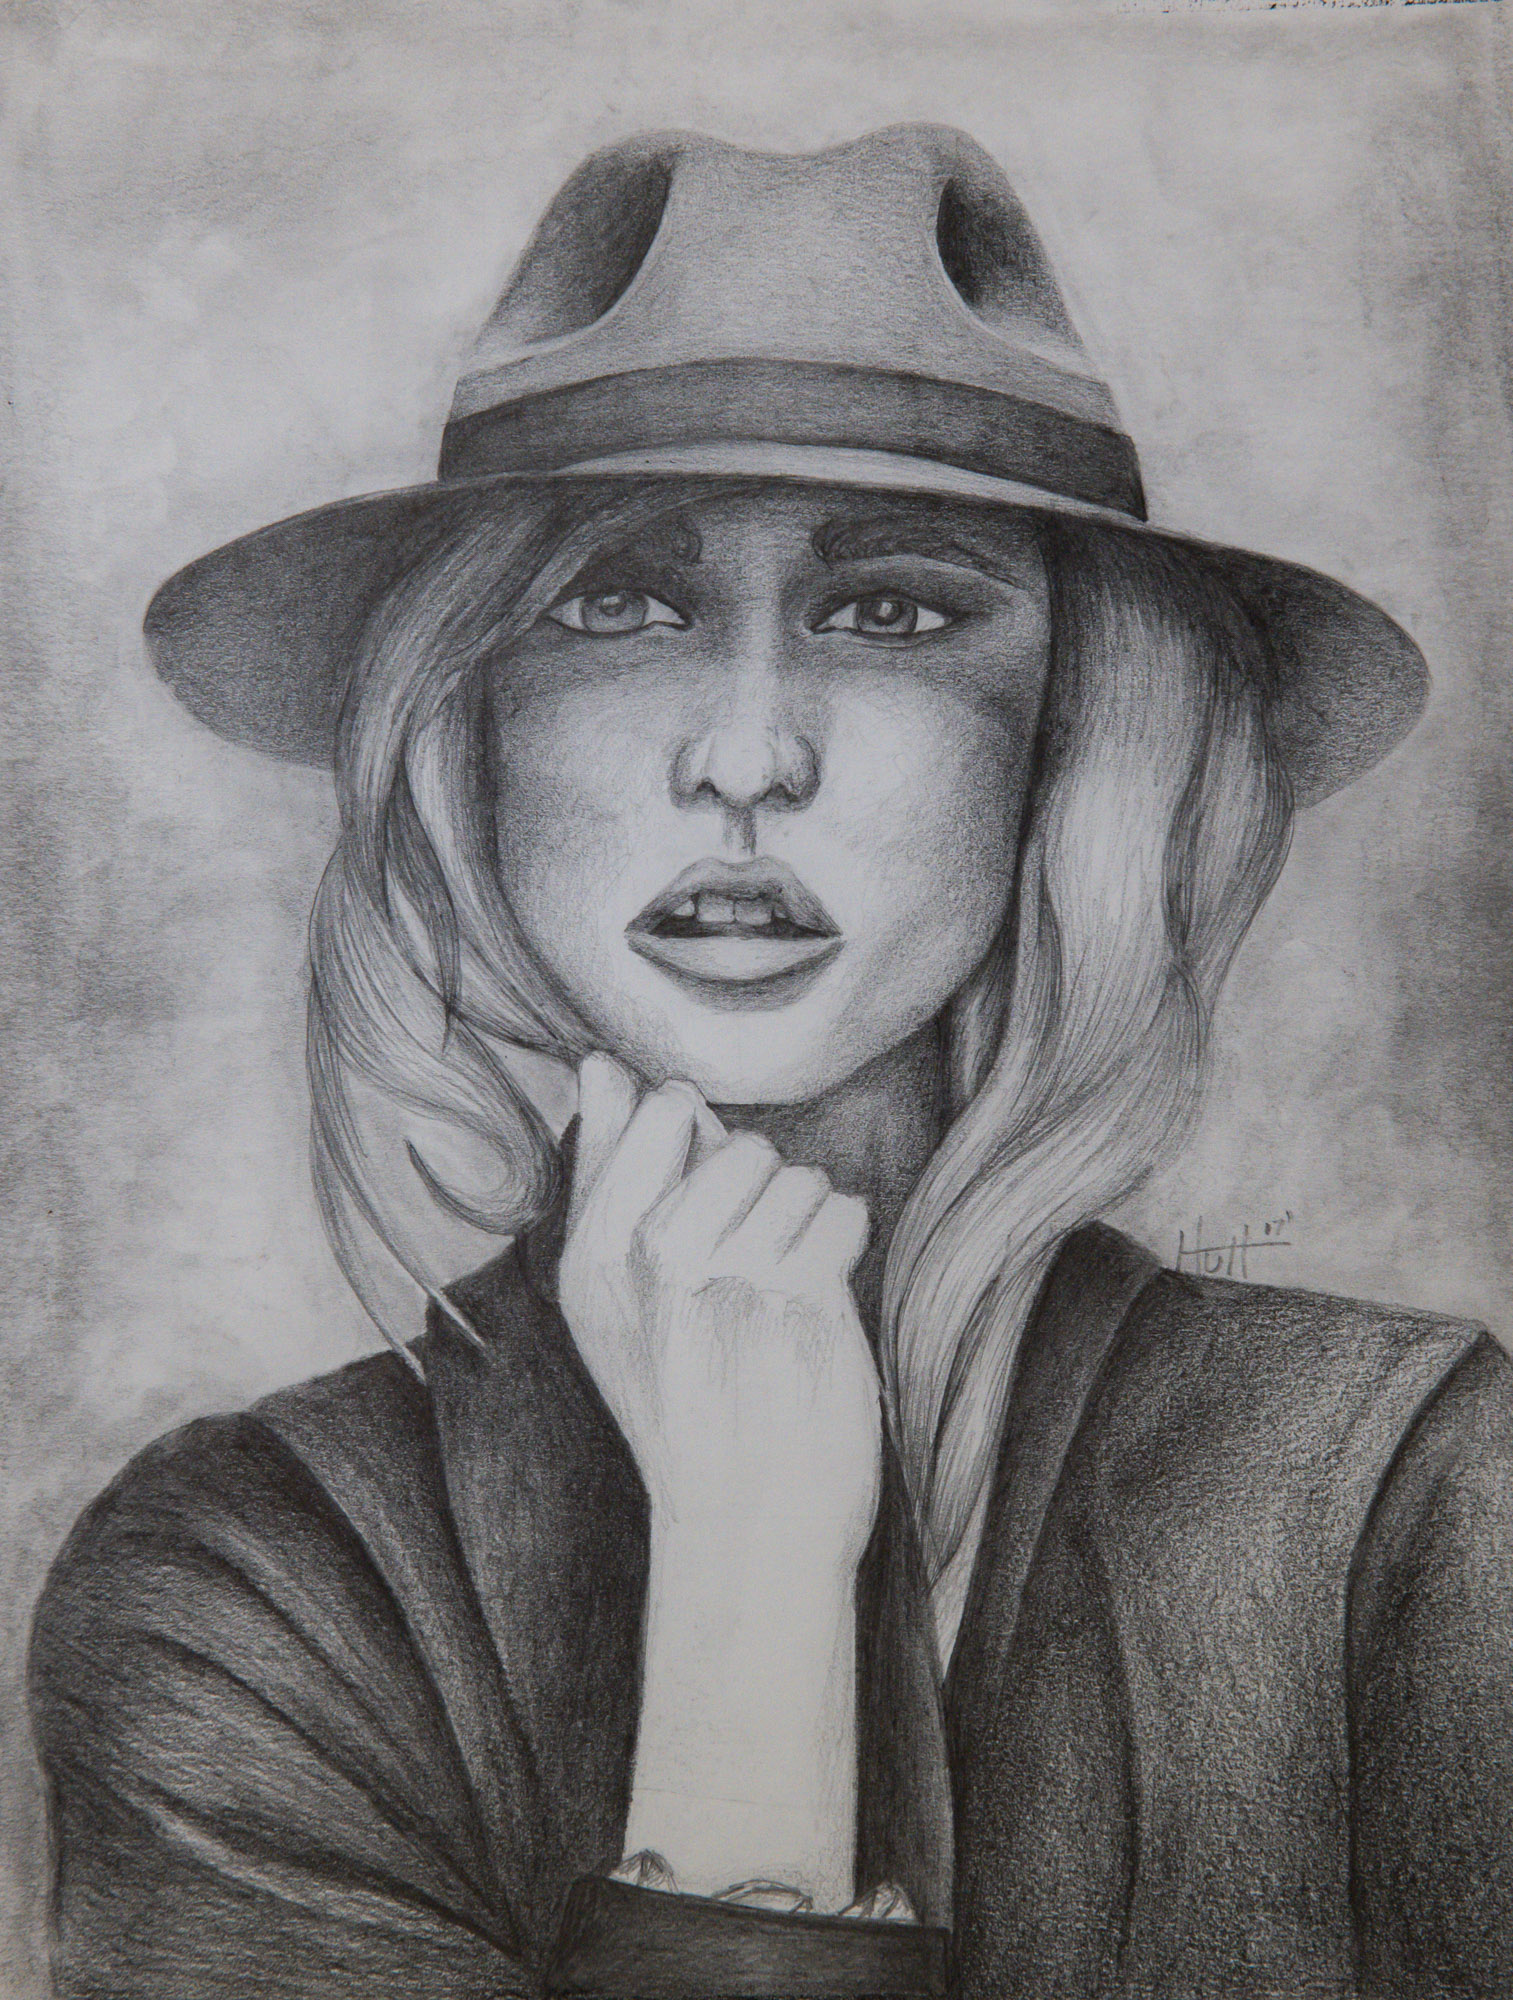 Girl in hat holding hair graphite drawing